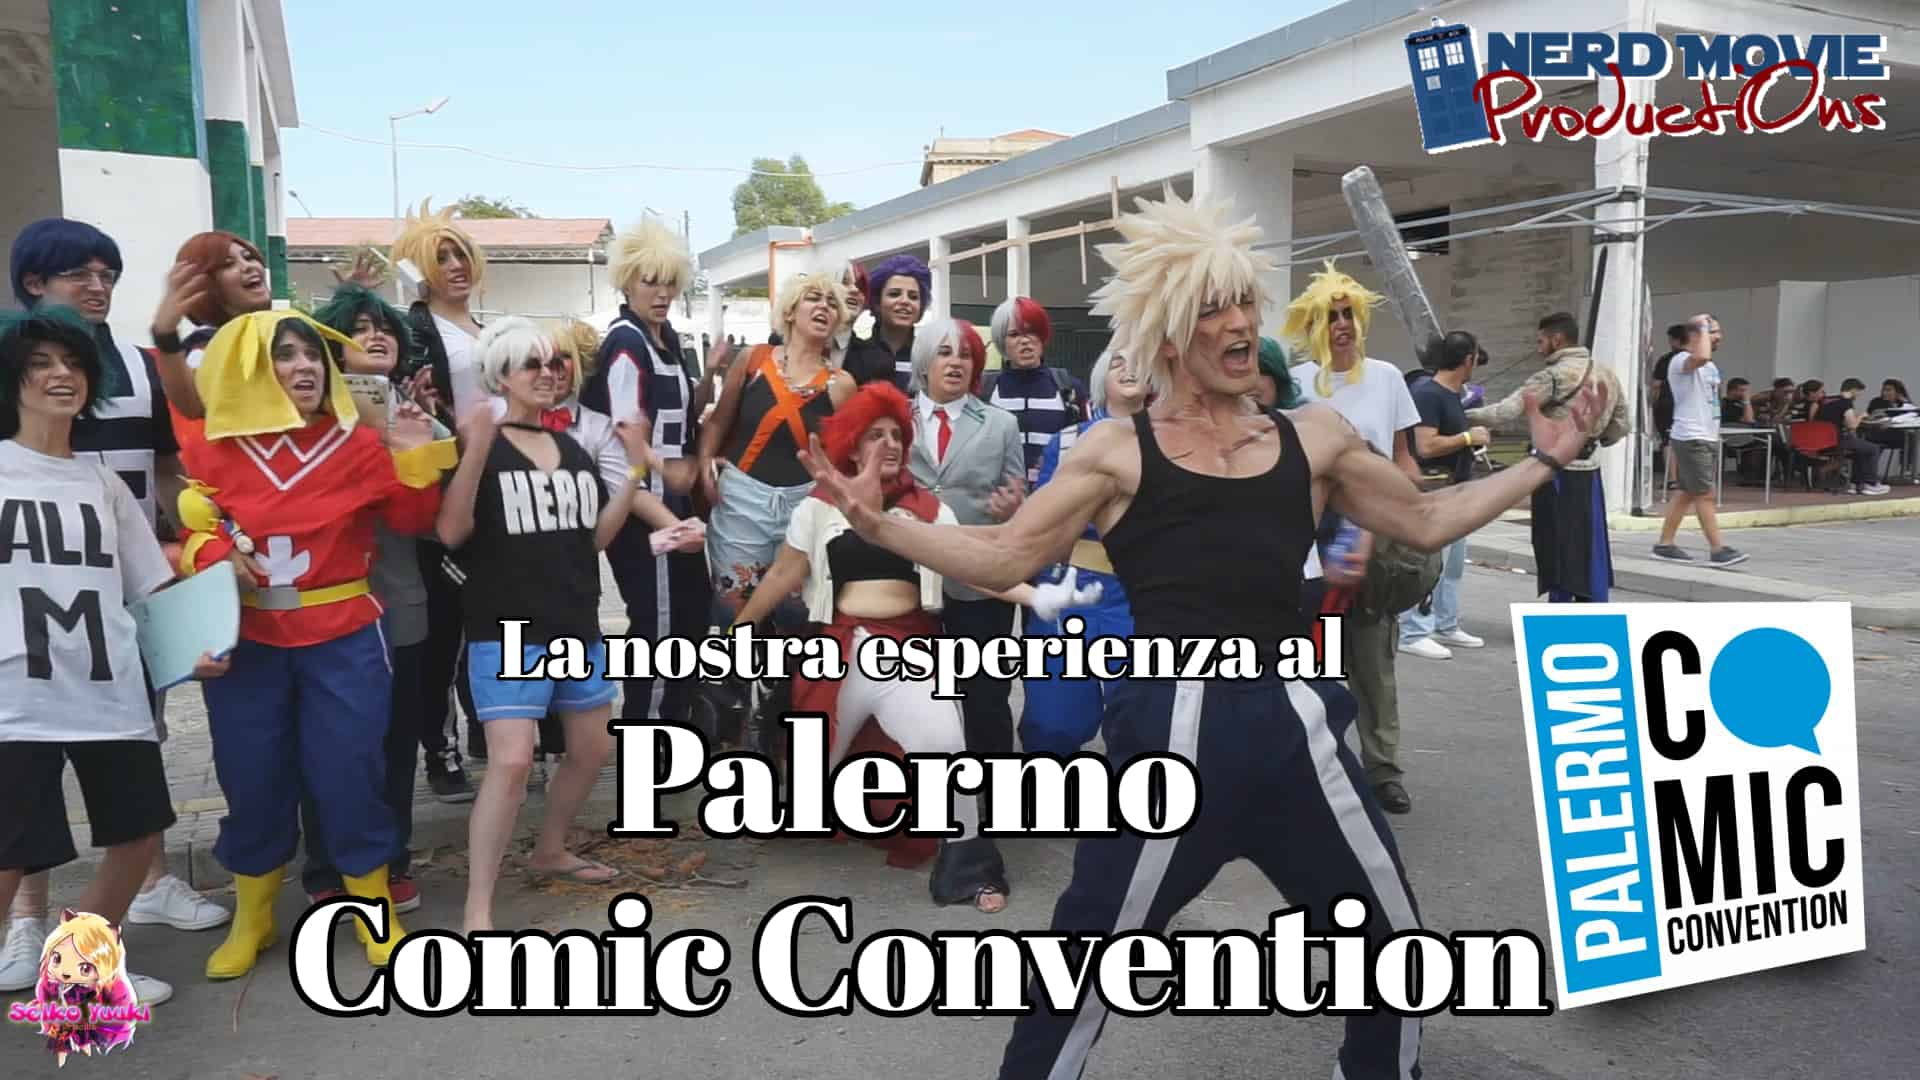 Palermo Comic Convention 2018